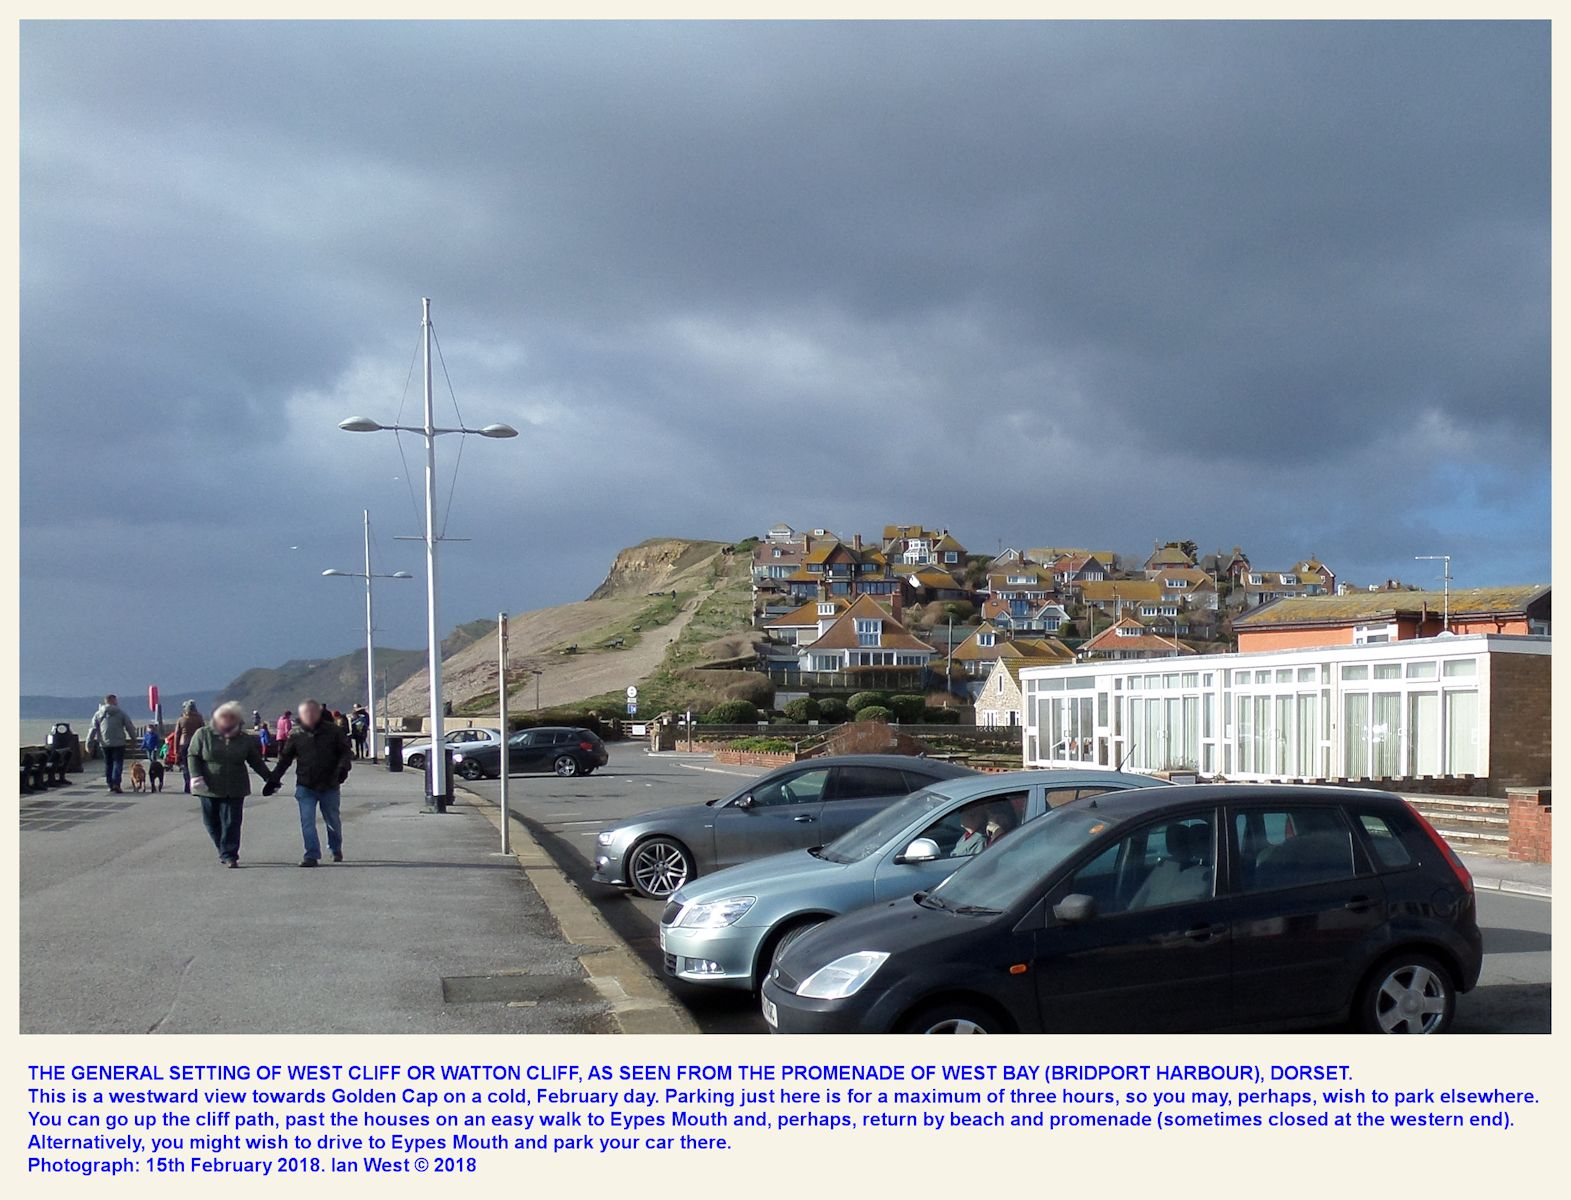 An introductory view westward from the promenade west of West of West Bay or Bridport Harbour, towards West Cliff or Watton Cliff, February 2018